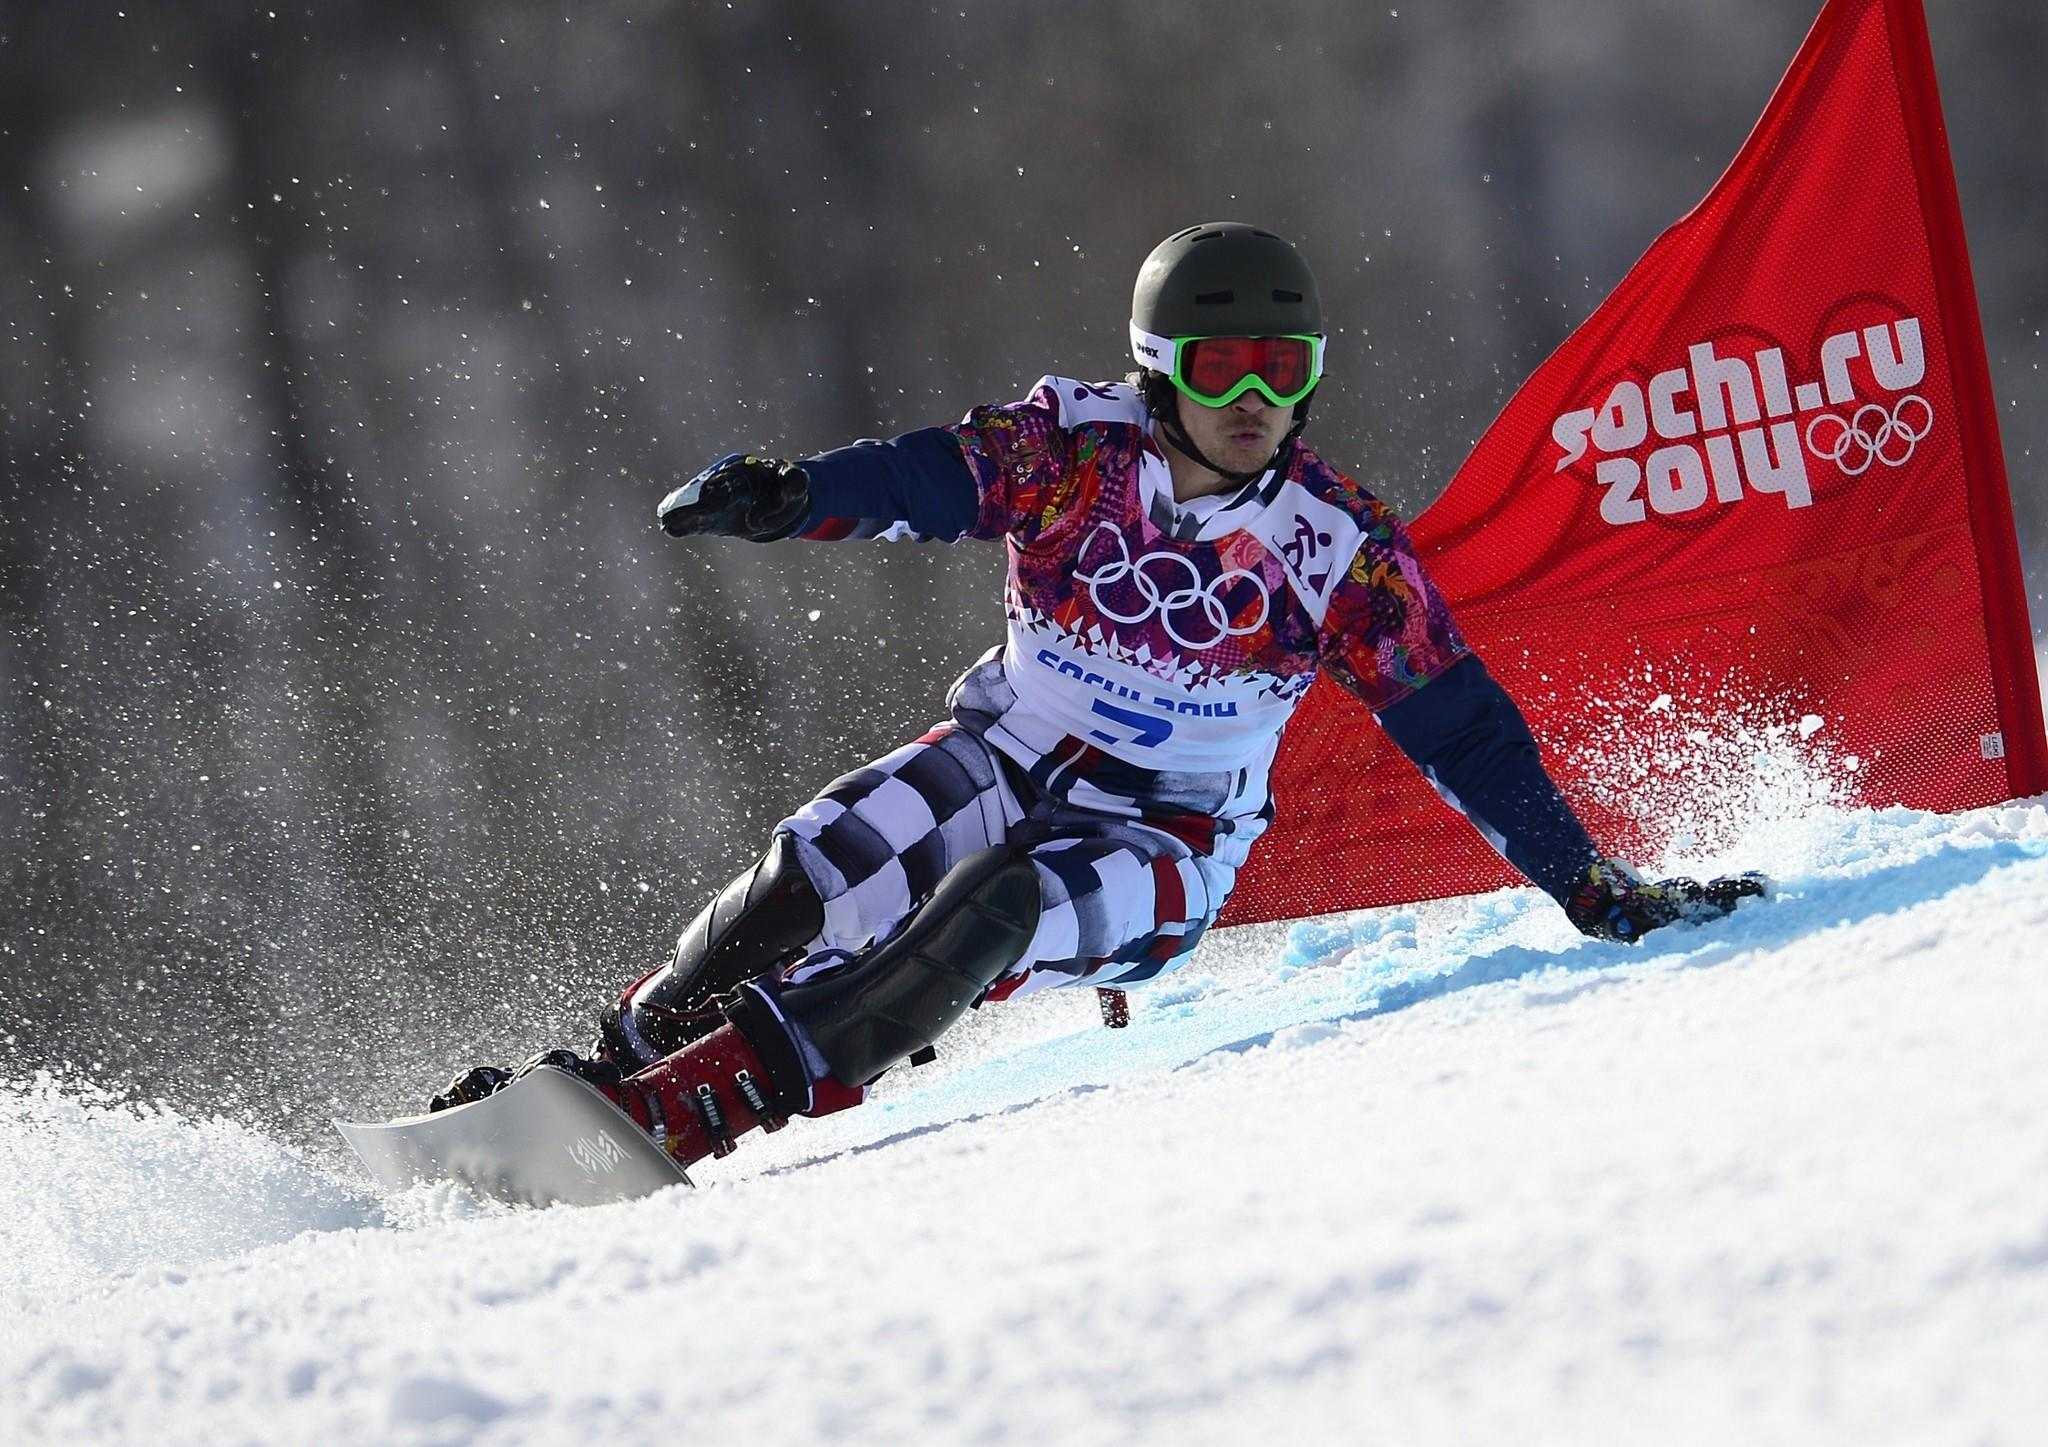 Vic Wild claimed the gold medal in the men's snowboard parallel giant slalom Wednesday for Russia, the country he left the United States for in 2011.